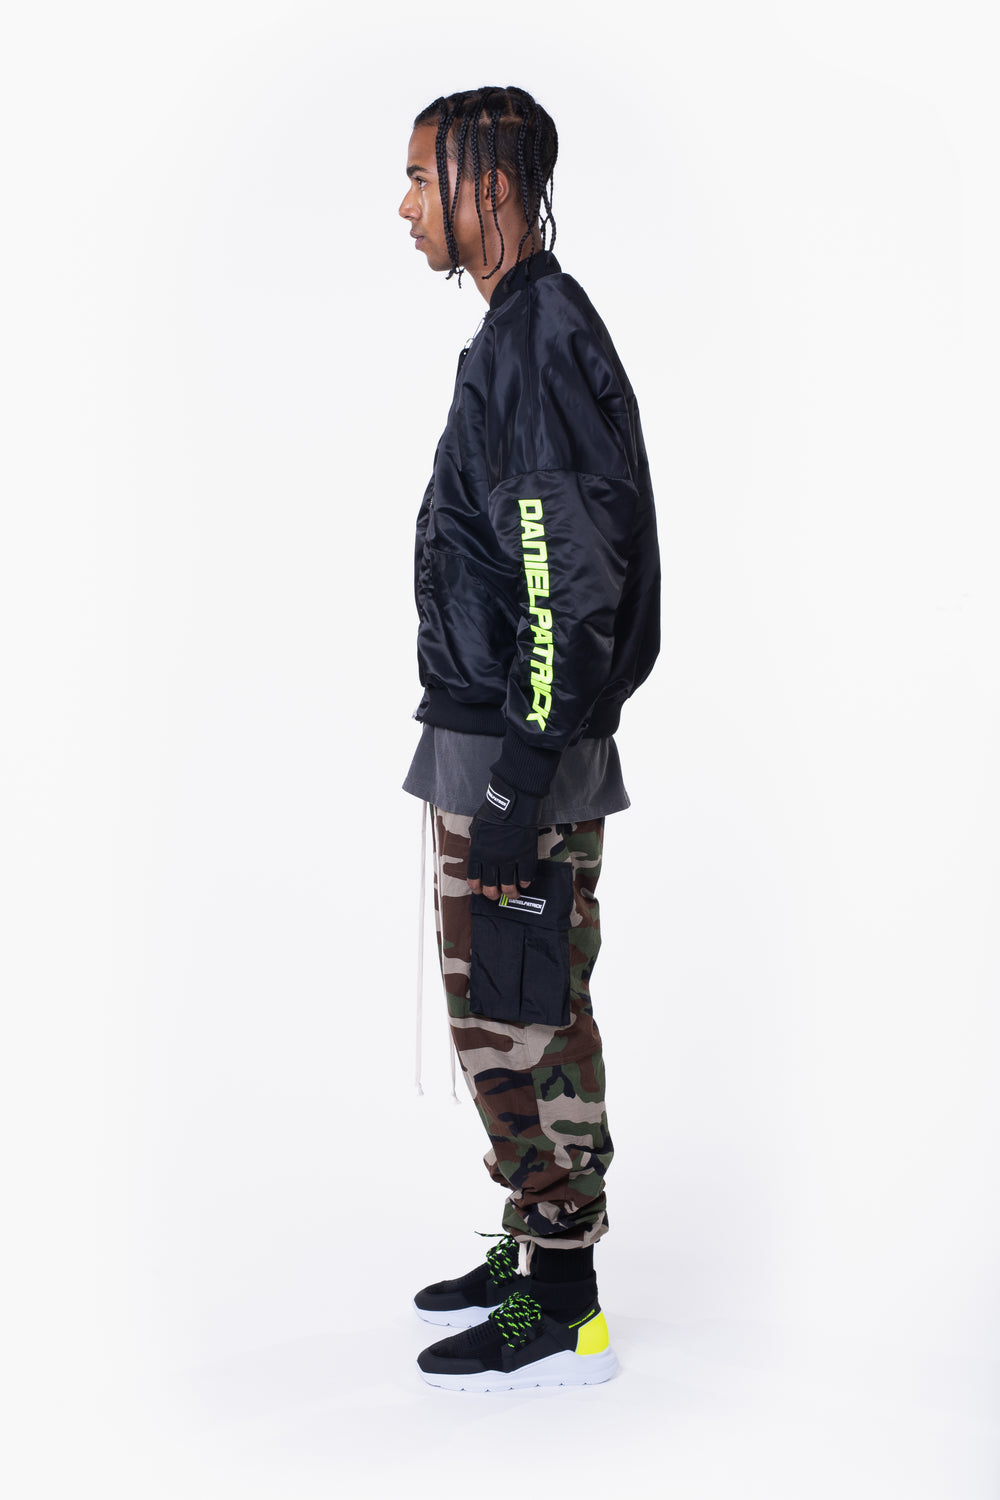 DP embroidered sleeve bomber / black + neon